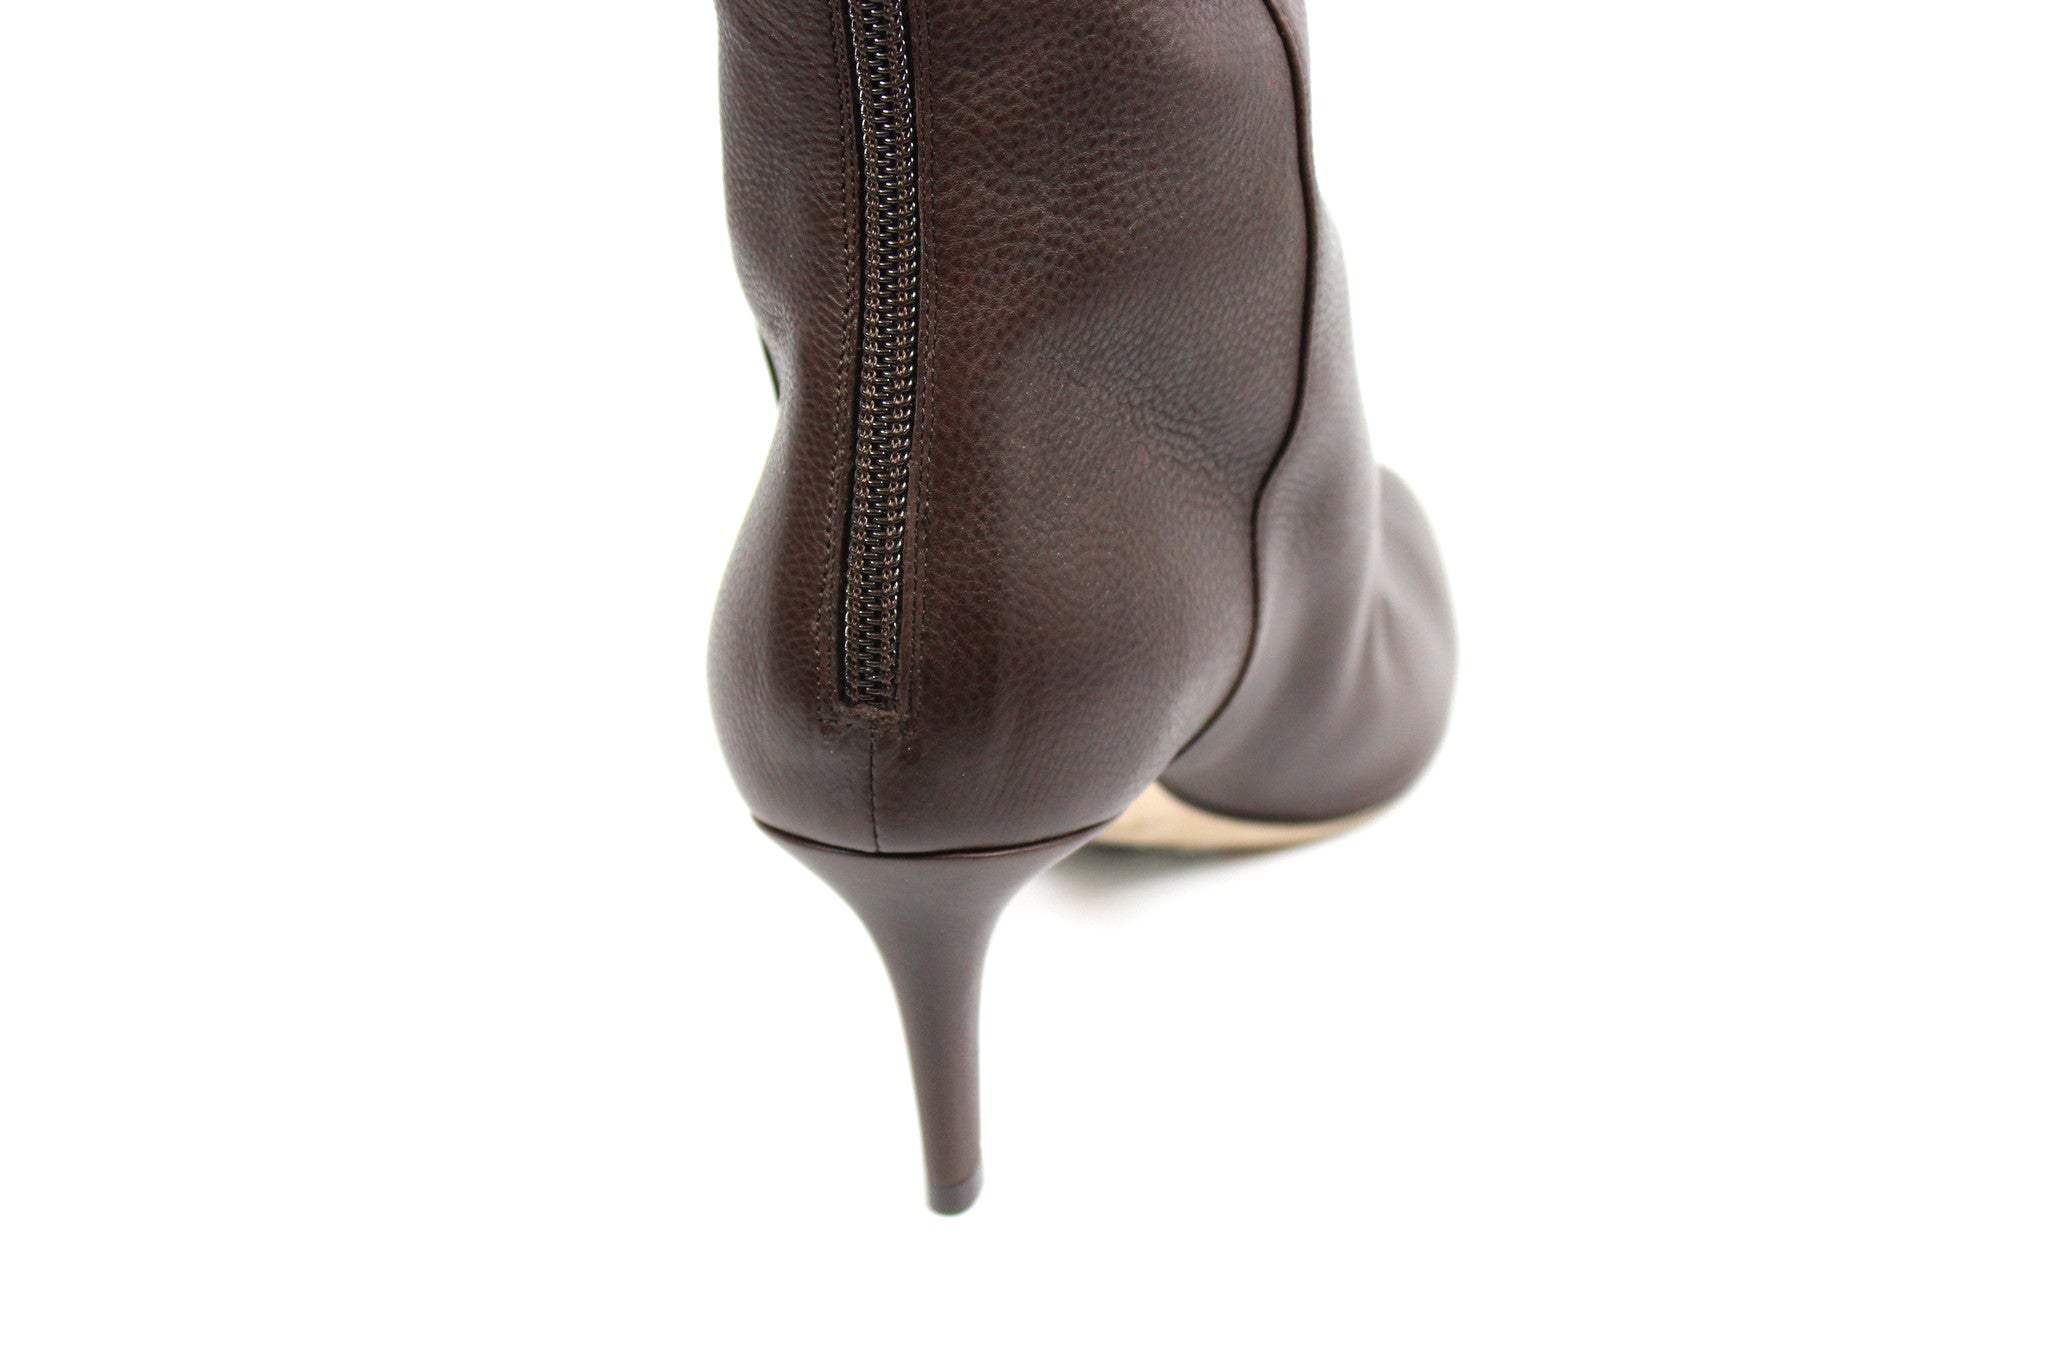 Jimmy Choo Brown Leather Boots (Size 37) - Encore Consignment - 6